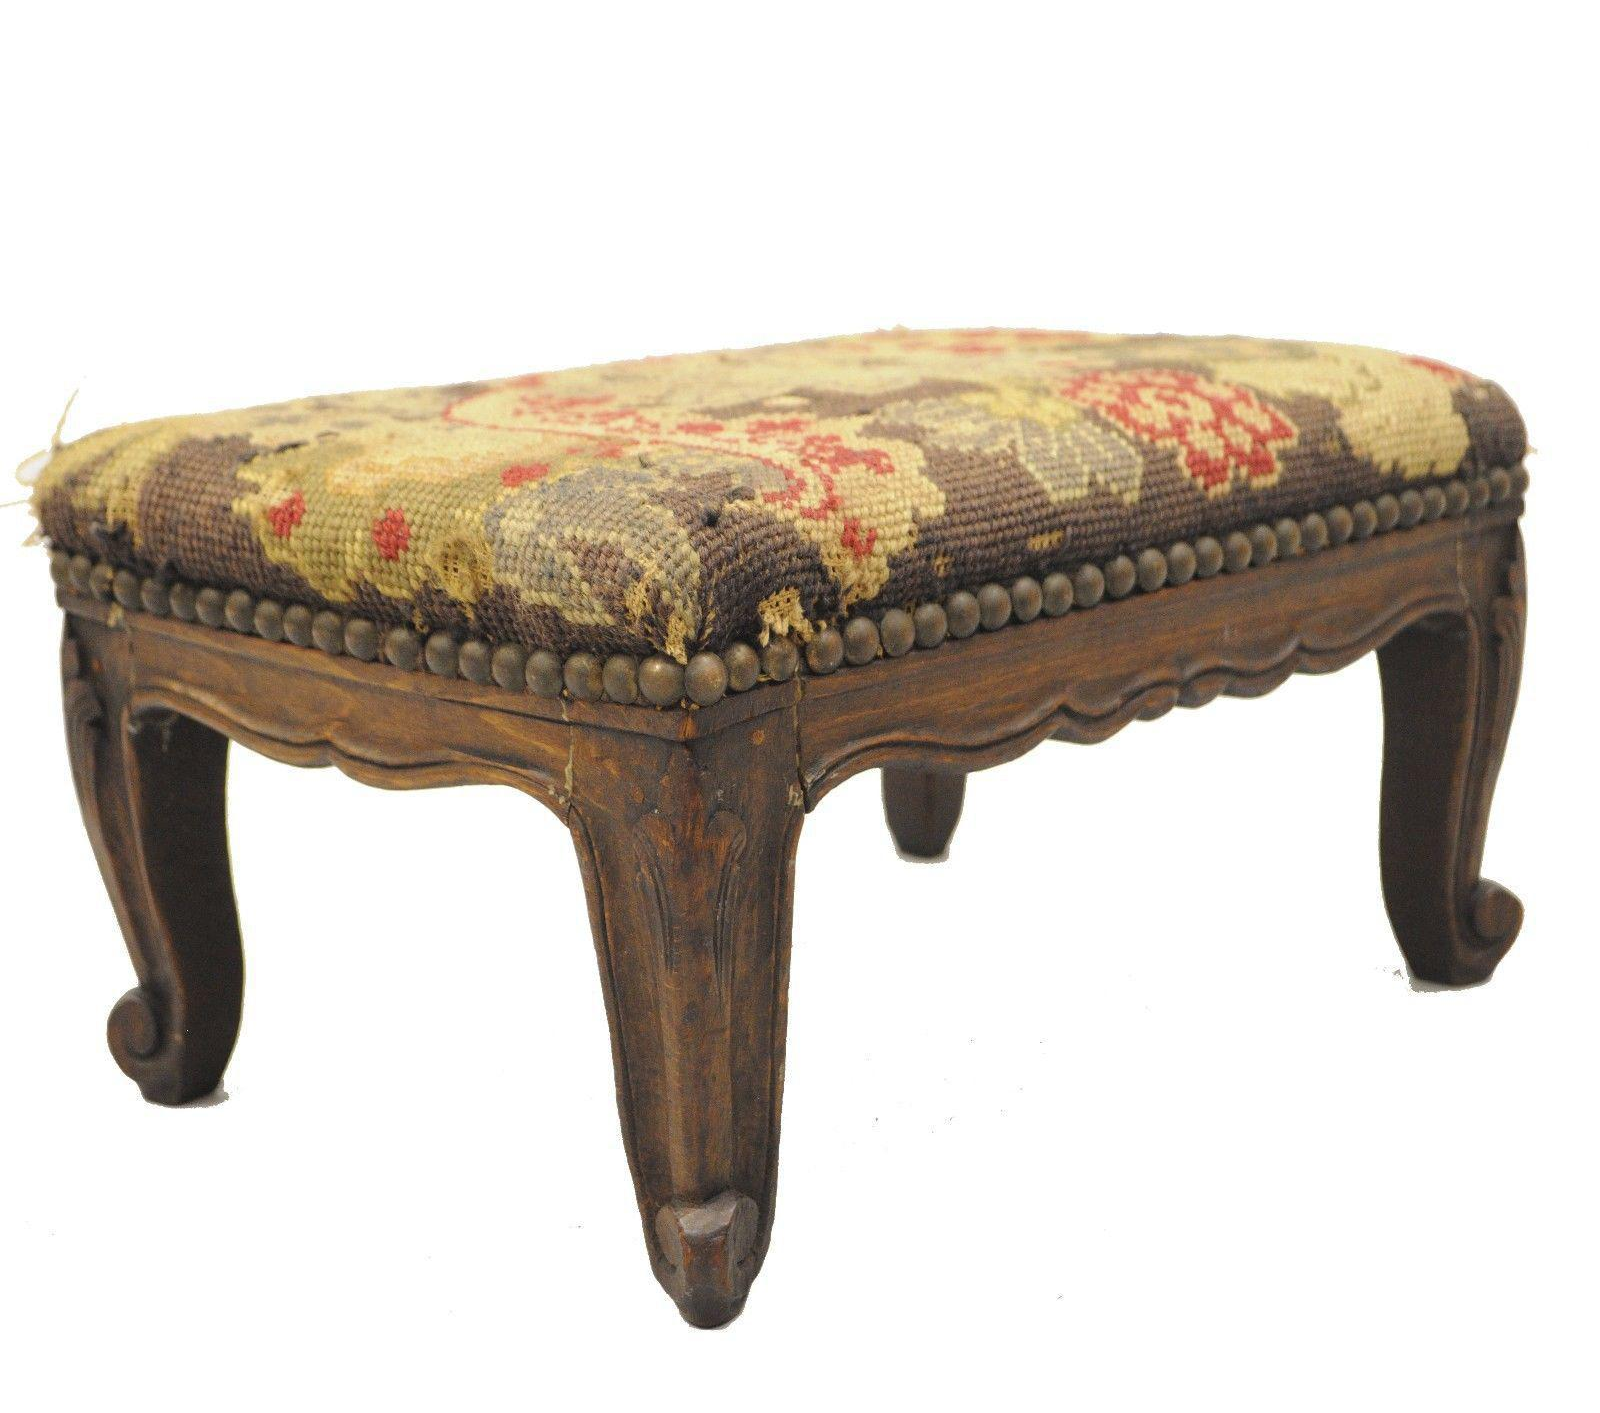 Small French Country Footstool Ottoman Petite Needlepoint Louis XV Carved  Walnut For Sale   Image 11